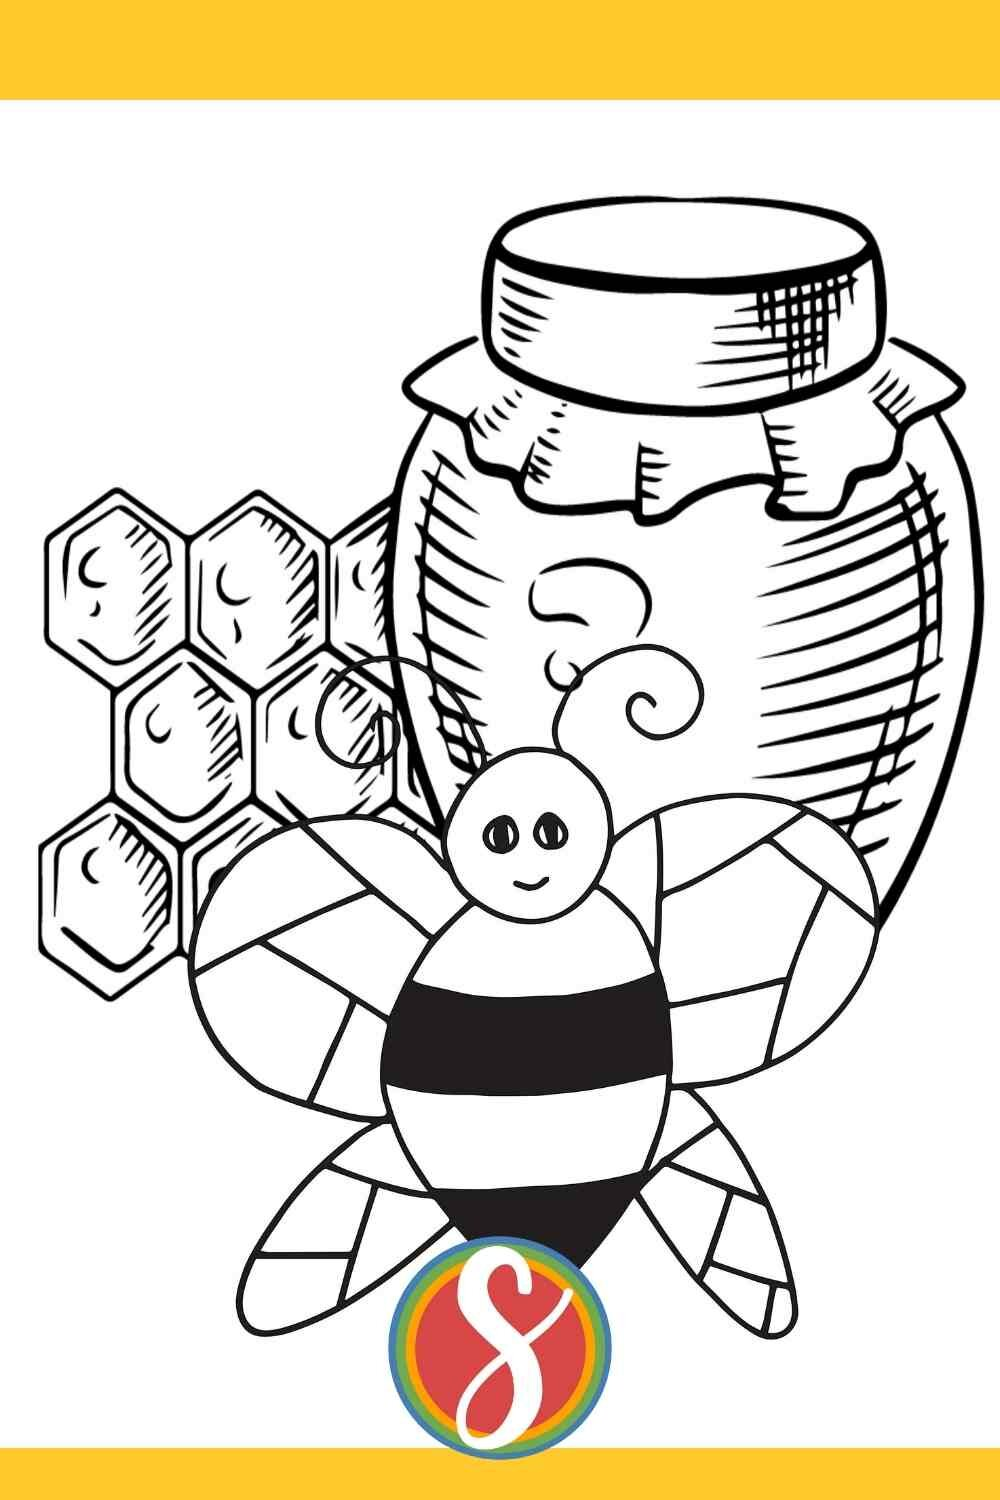 free bee coloring page from Stevie Doodles - this free kids coloring page has a bee, a jar of honey, and some honeycomb to color. Totally free to print and color from Stevie Doodles